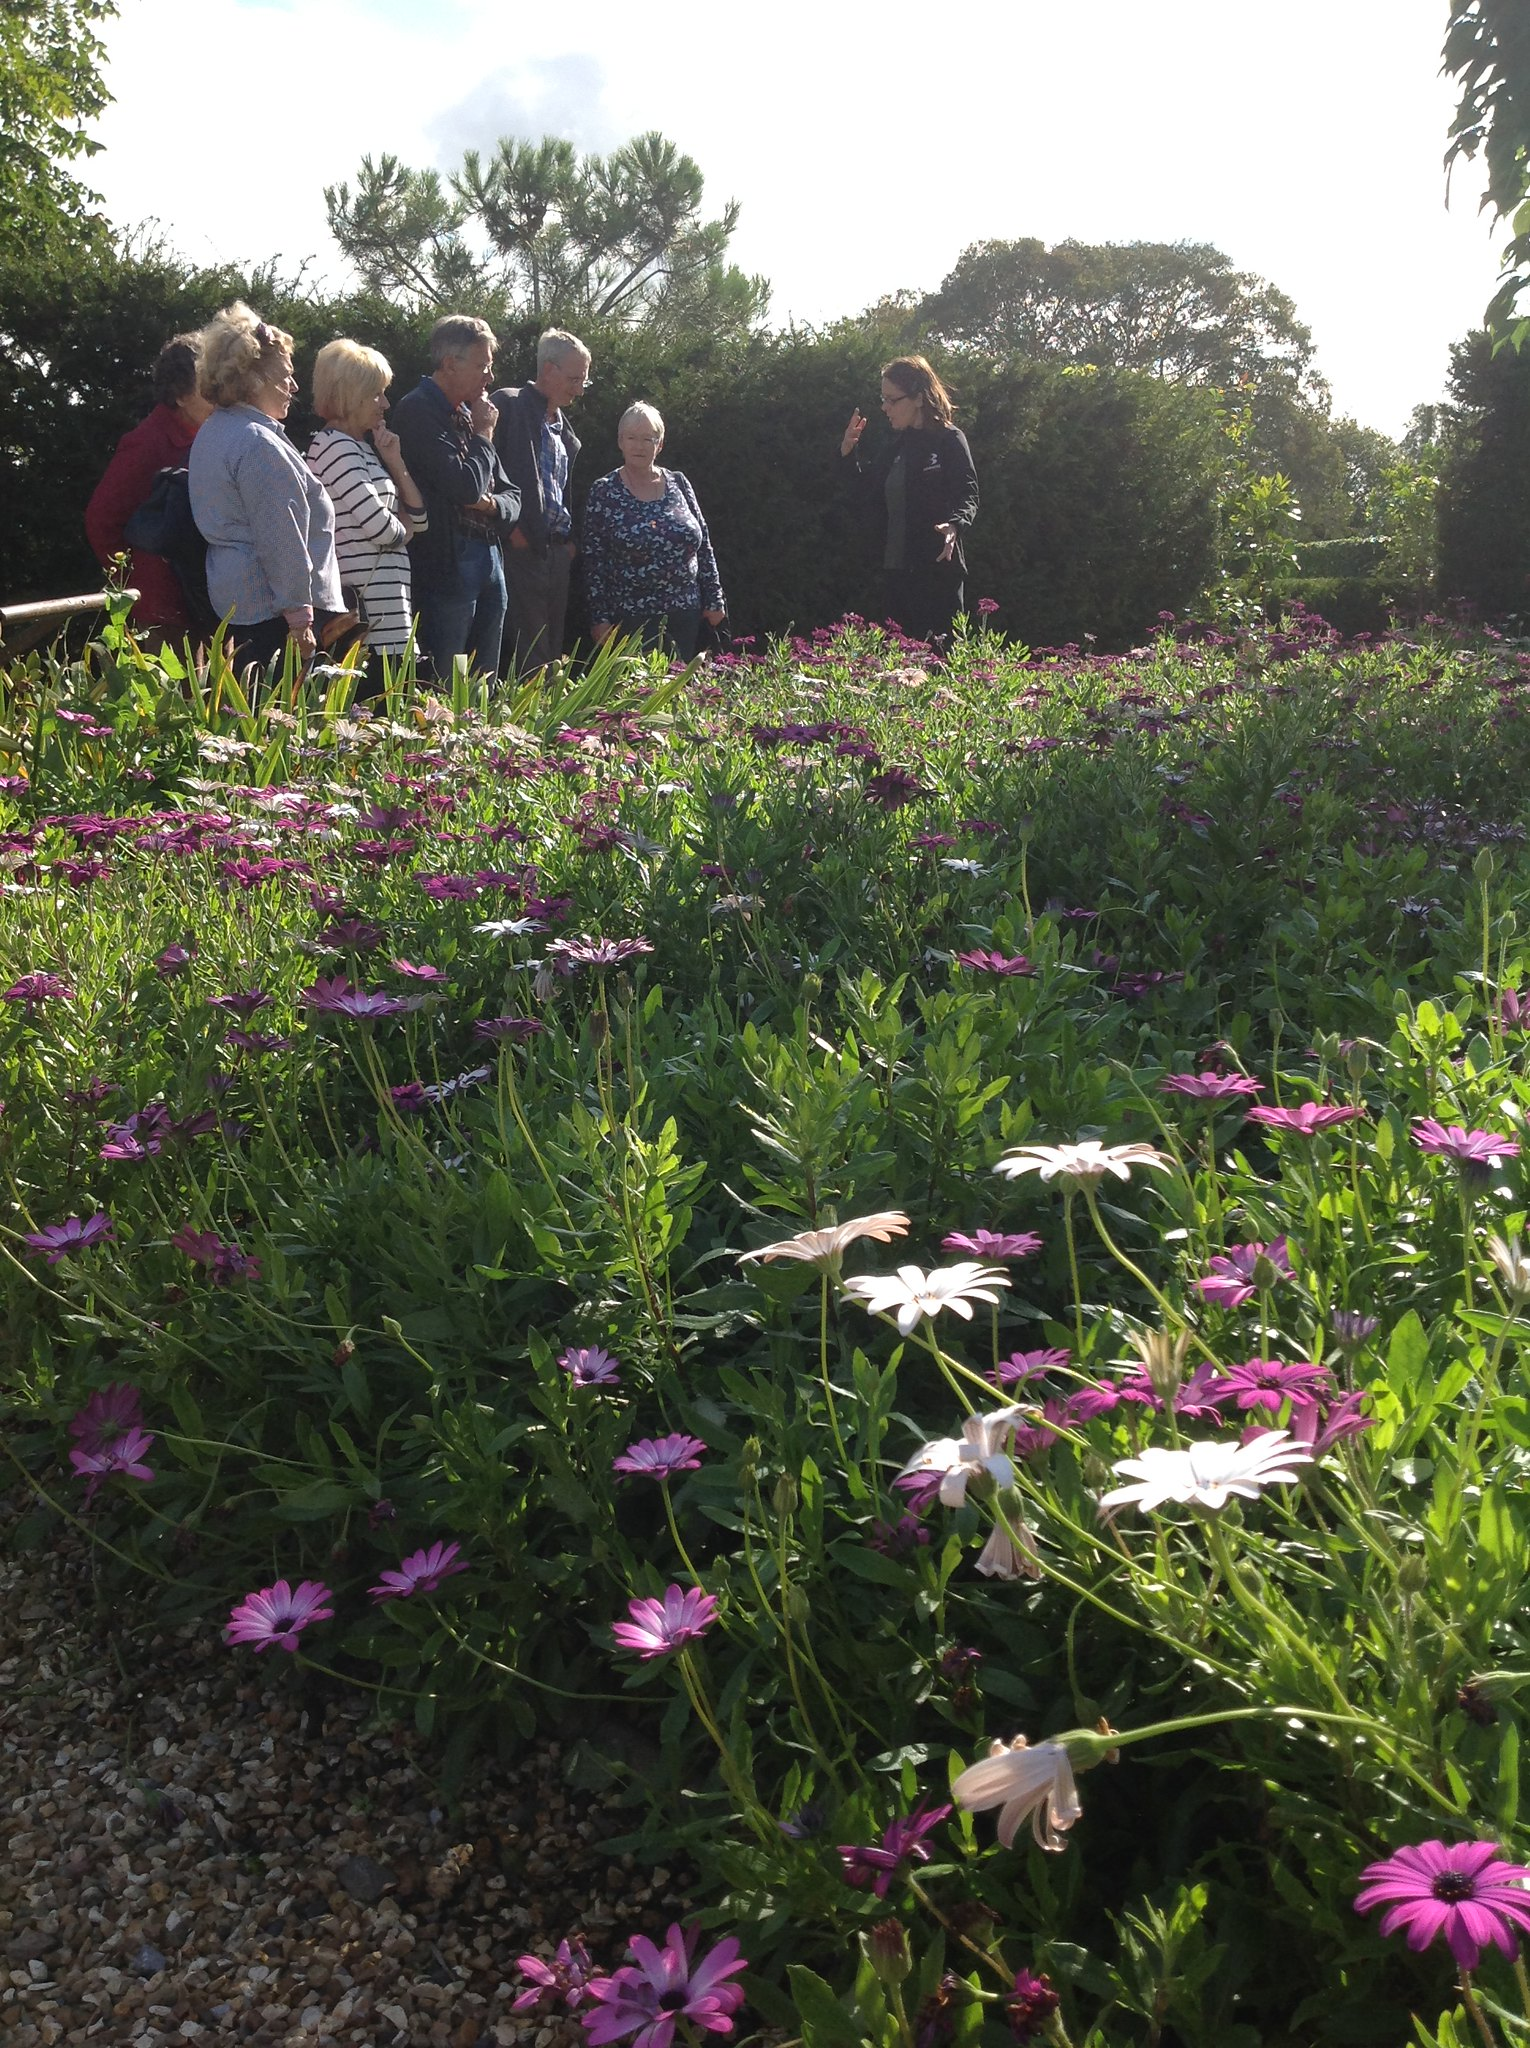 The Walled Gardens of Cannington host successful networking event